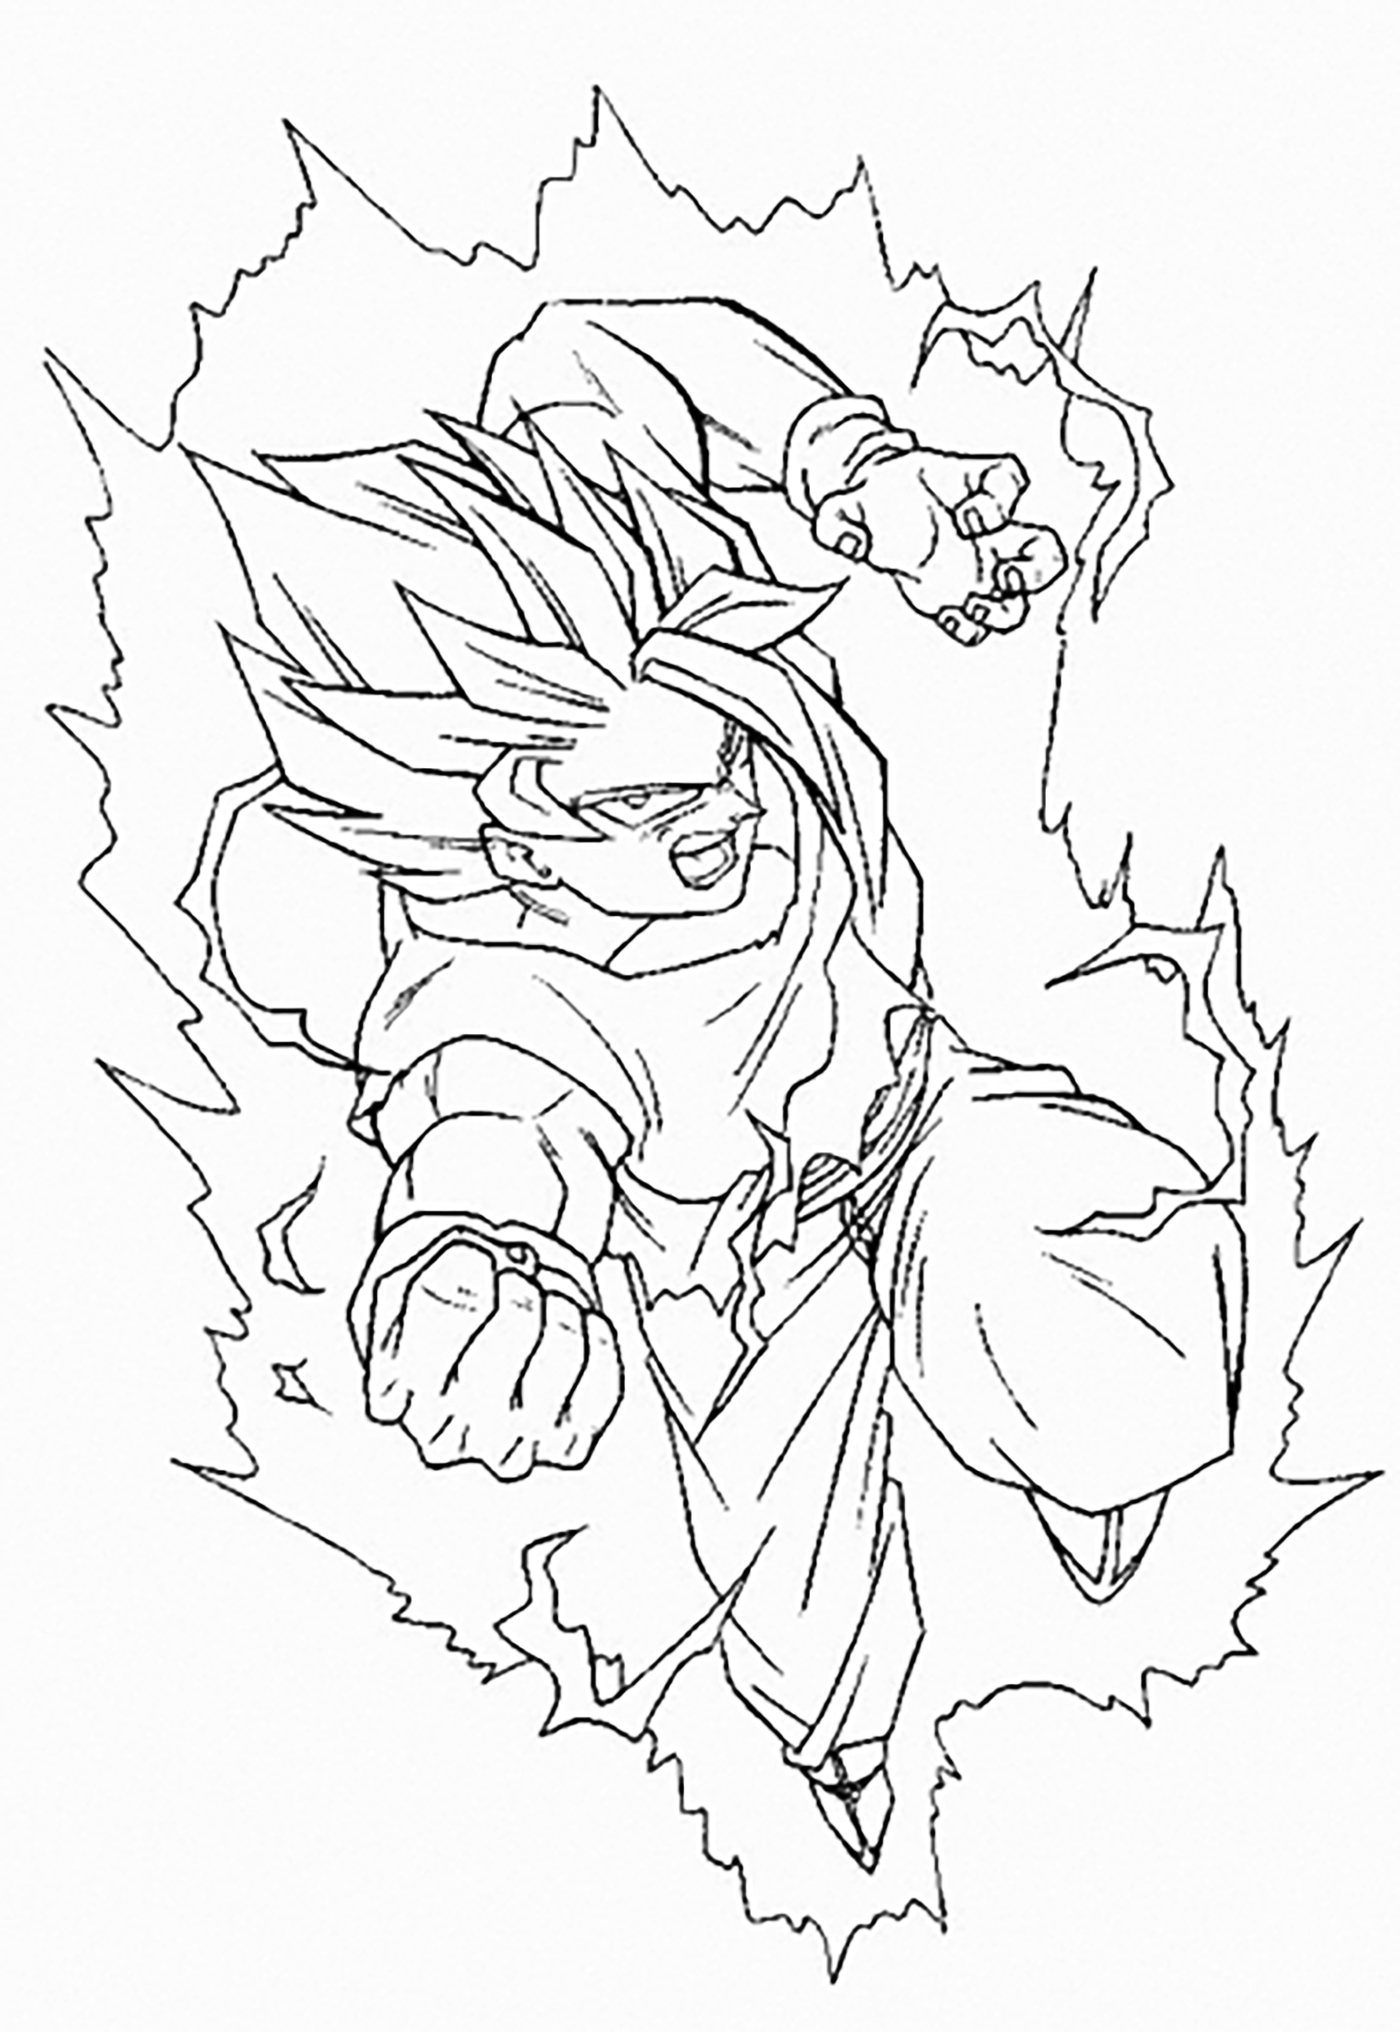 Unique dessin a imprimer dragon ball gt - Coloriage dragon ball z sangoku ...